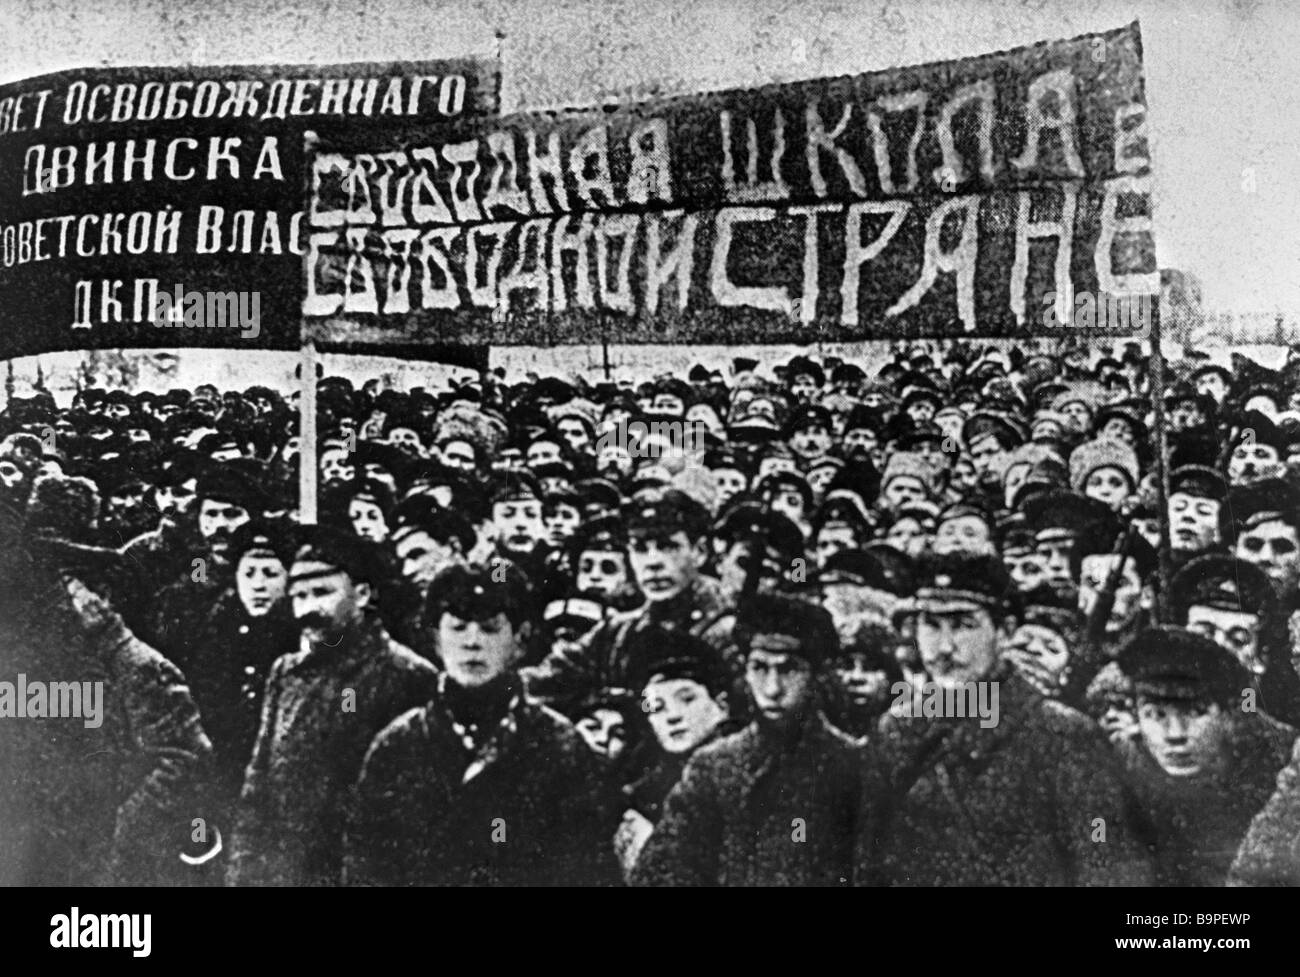 A rally at Dvinsk as Soviet rule is established - Stock Image